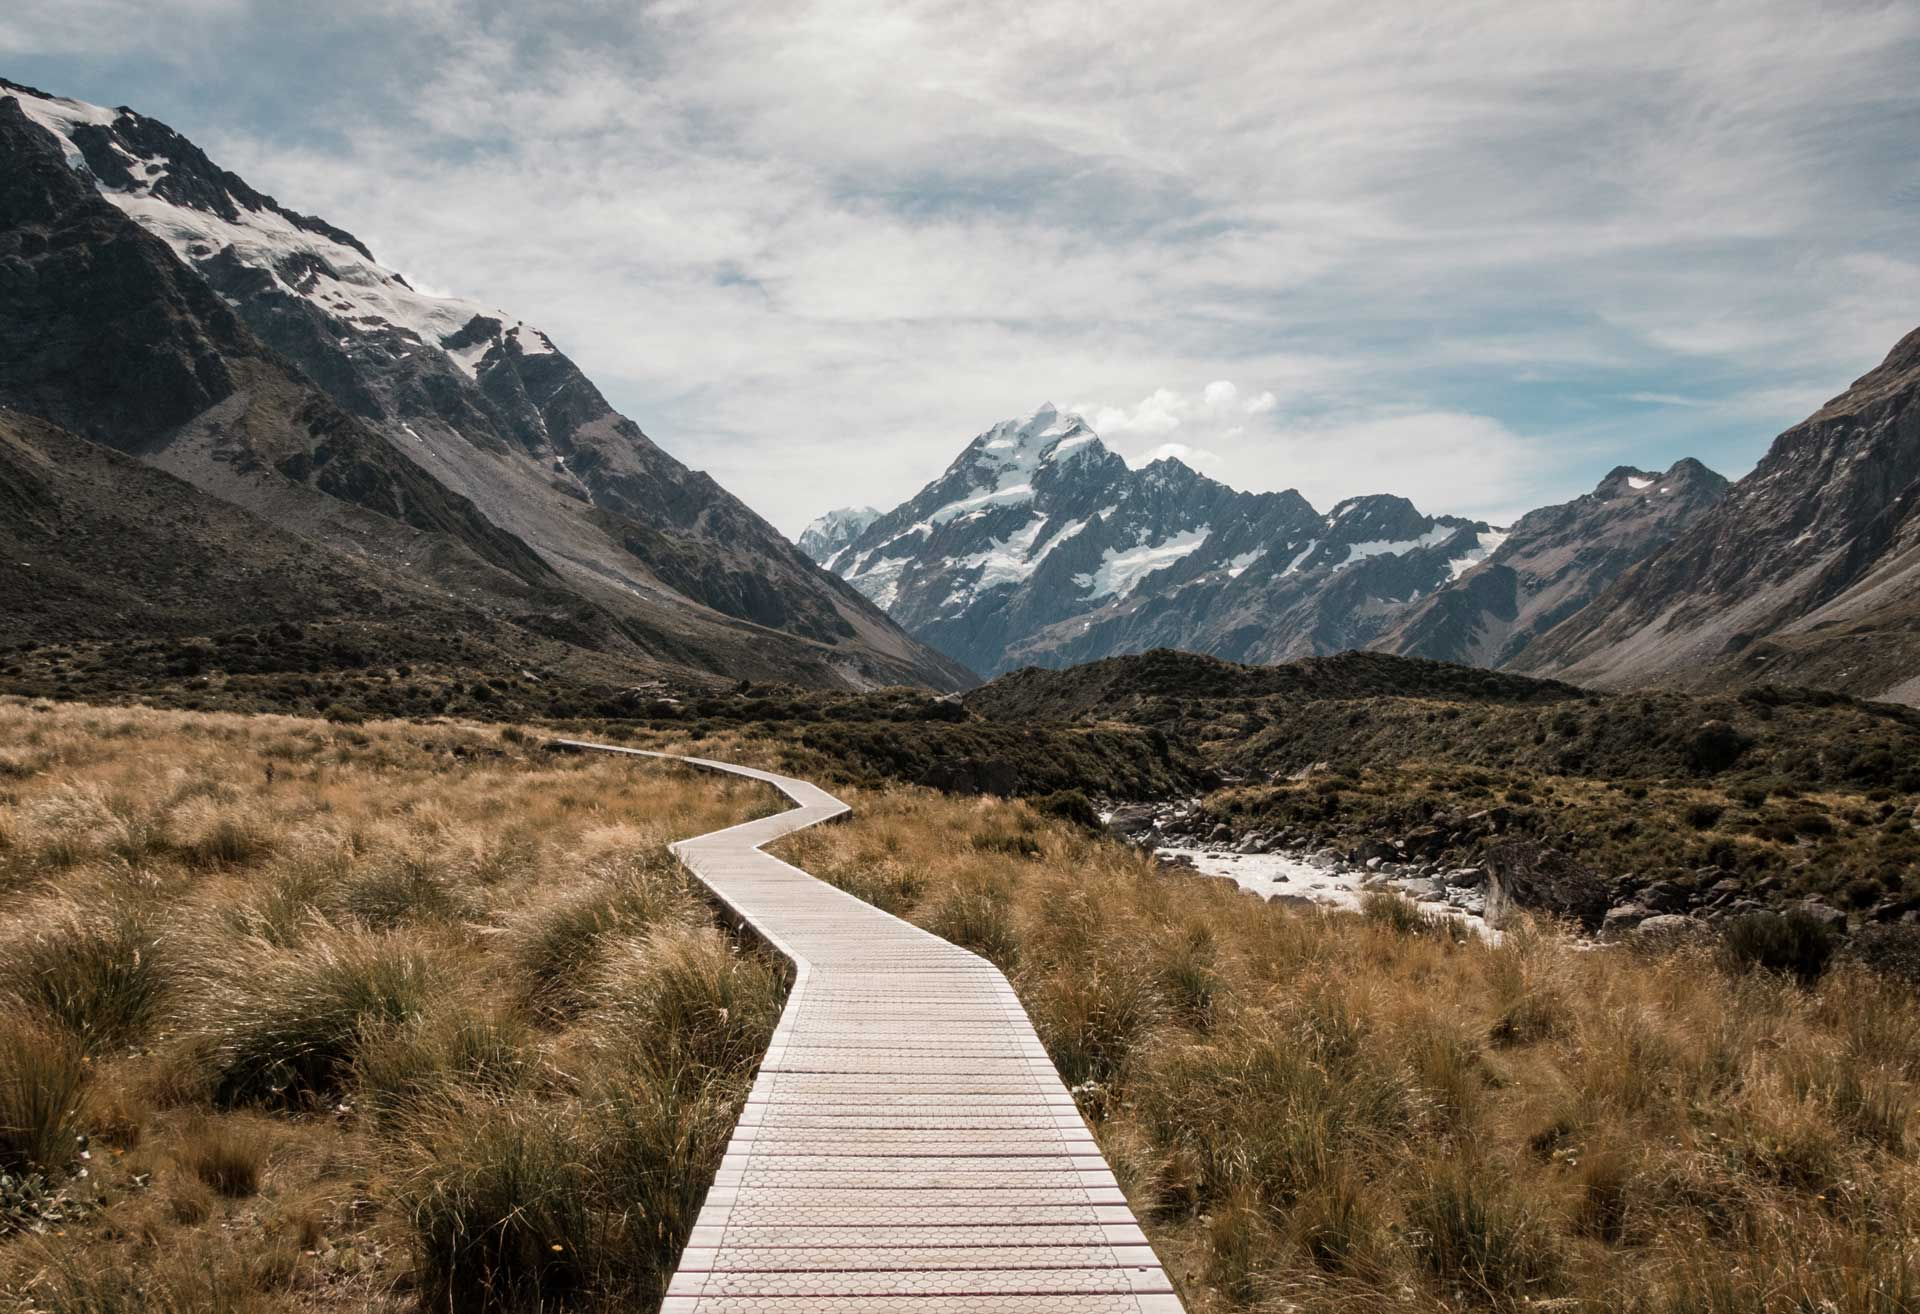 Real Estate Investing Success: Creating a Path of Least Resistance